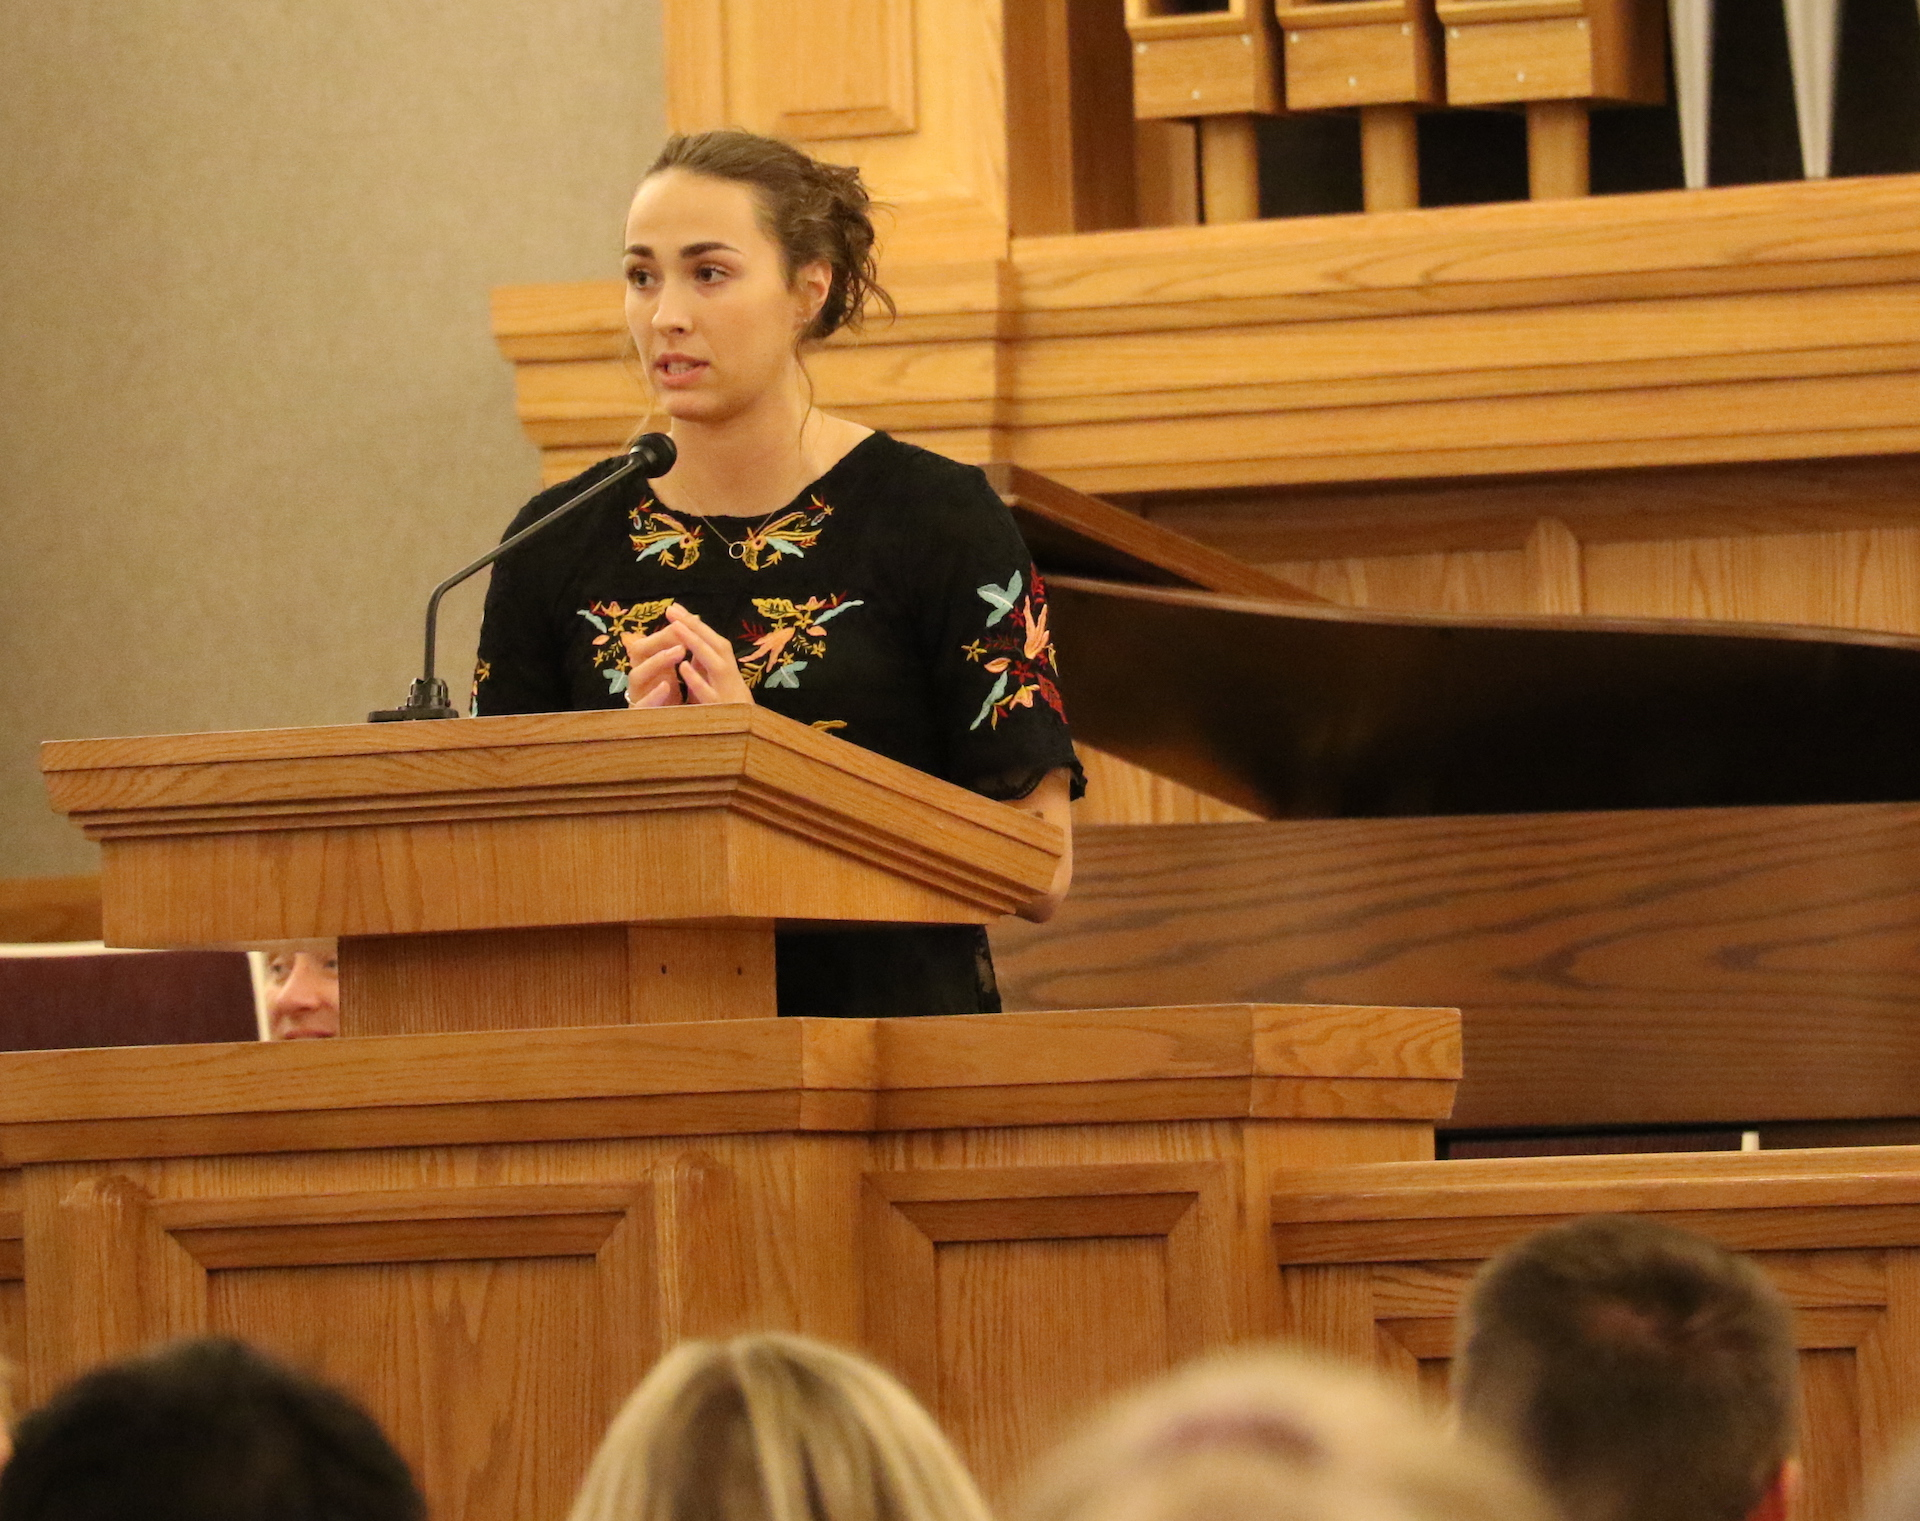 Swimmer and returned missionary McKenna Gassaway speaks at the Sept. 27, 2019, athlete devotional at the Institute of Religion at the University of Utah.